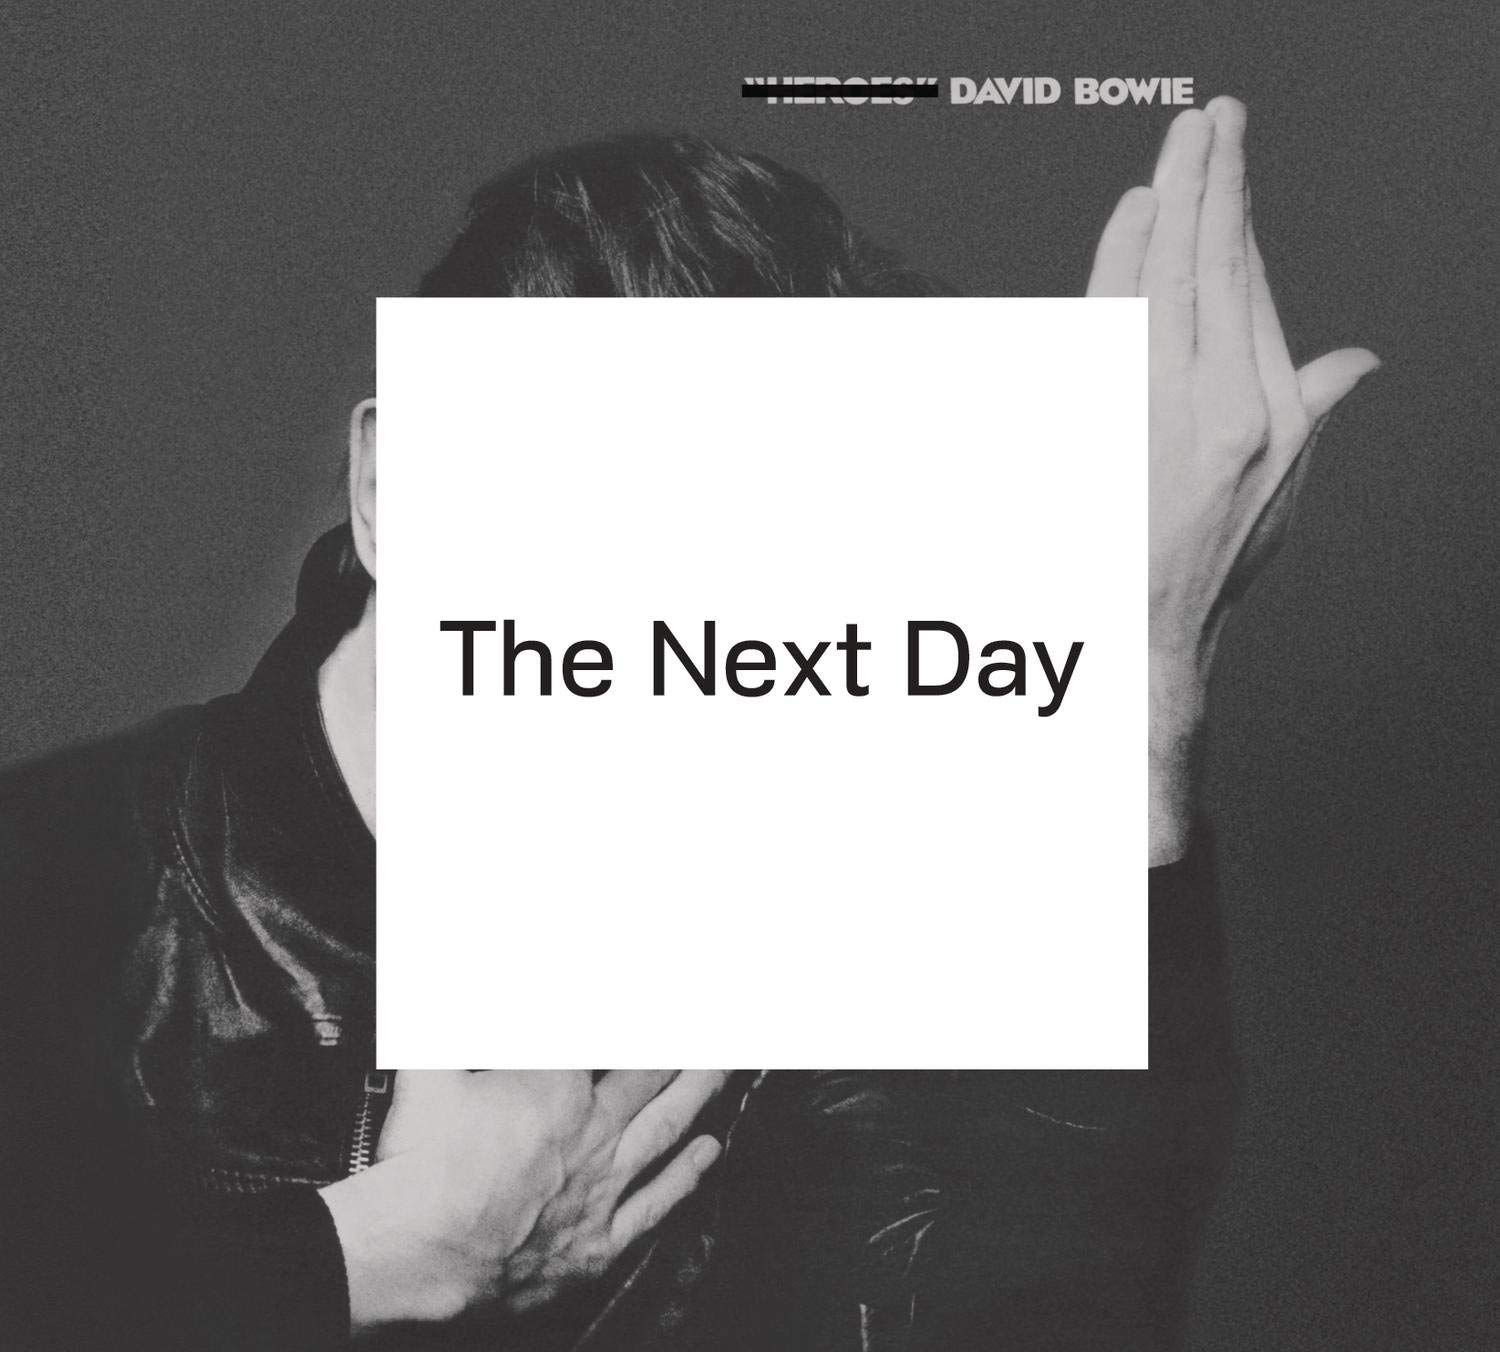 'The Next Day' - David Bowie